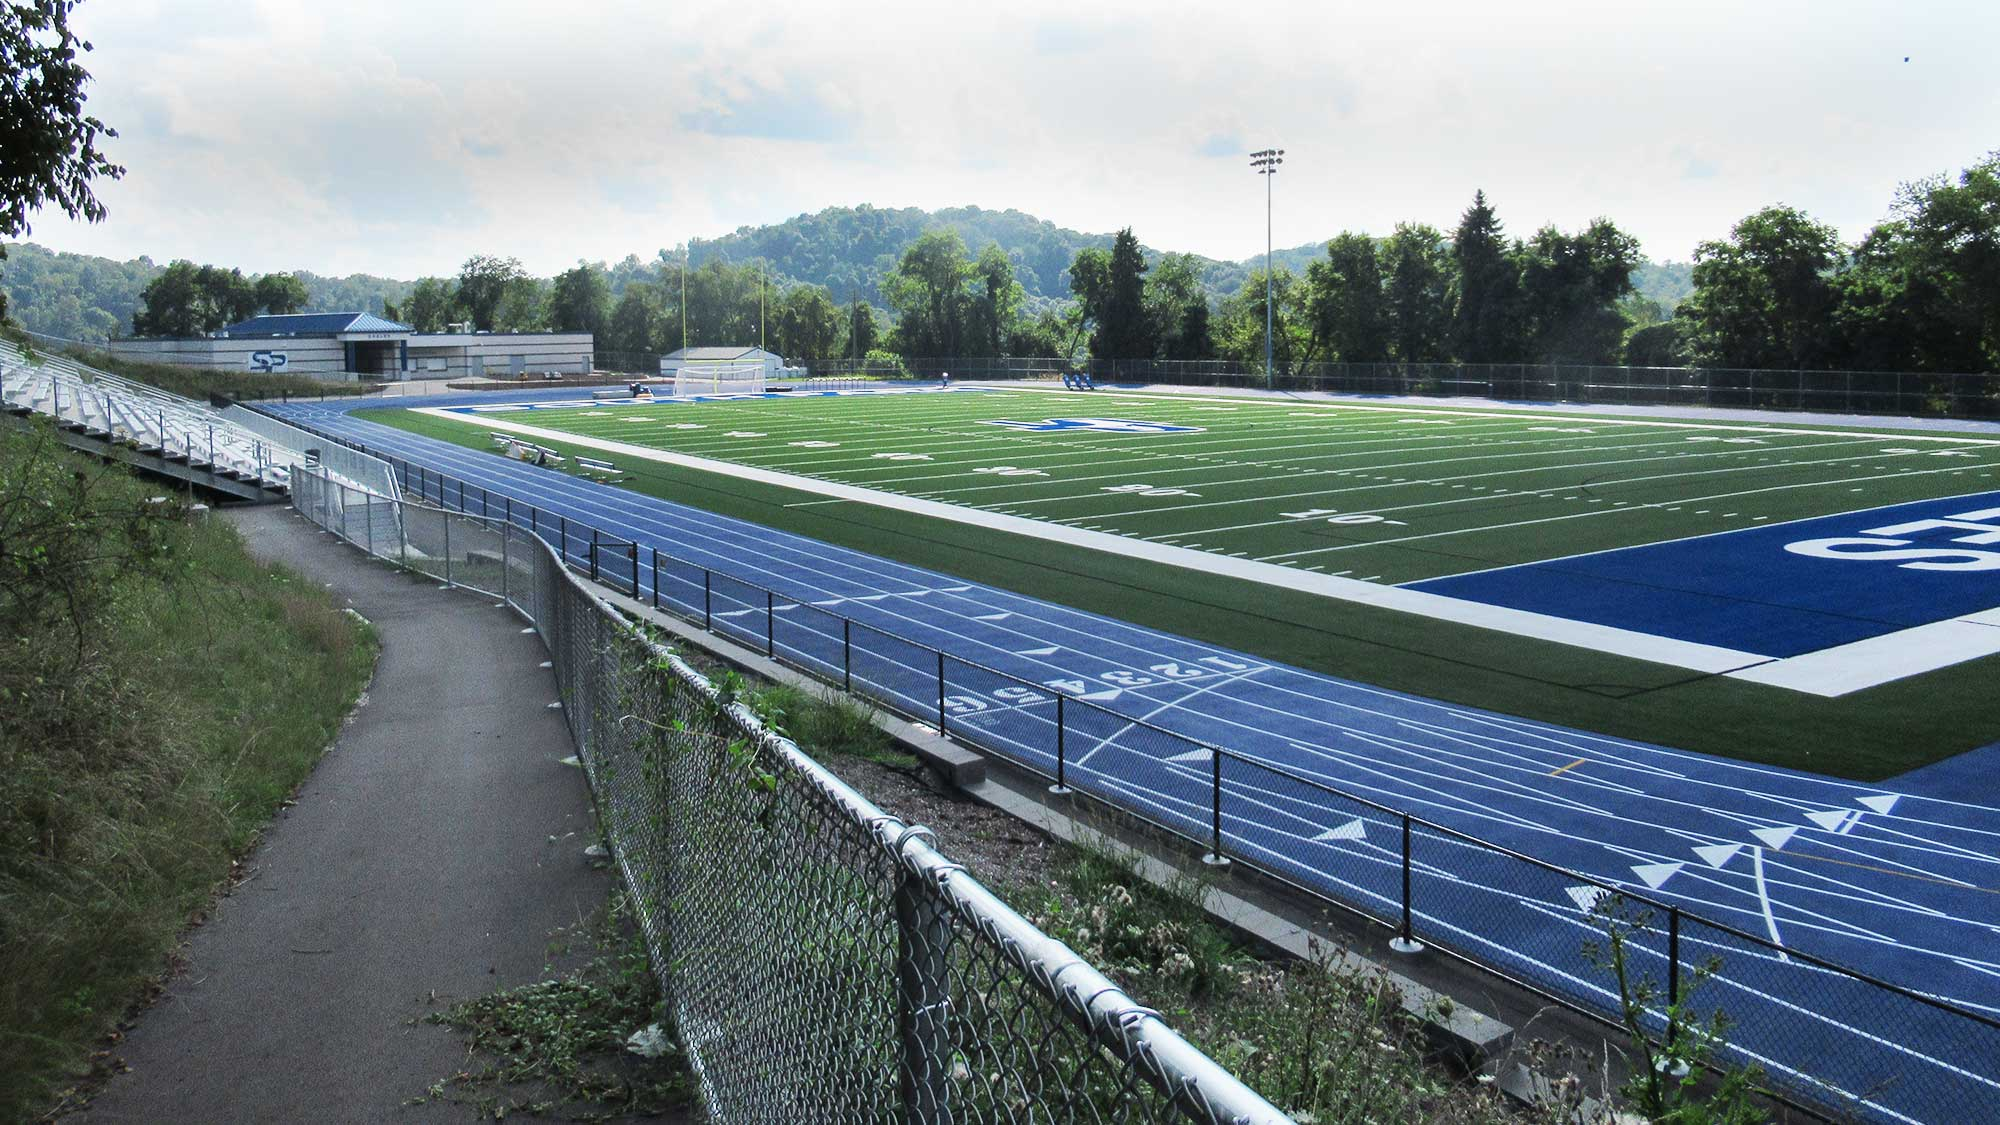 SOUTH PARK EAGLE STADIUM